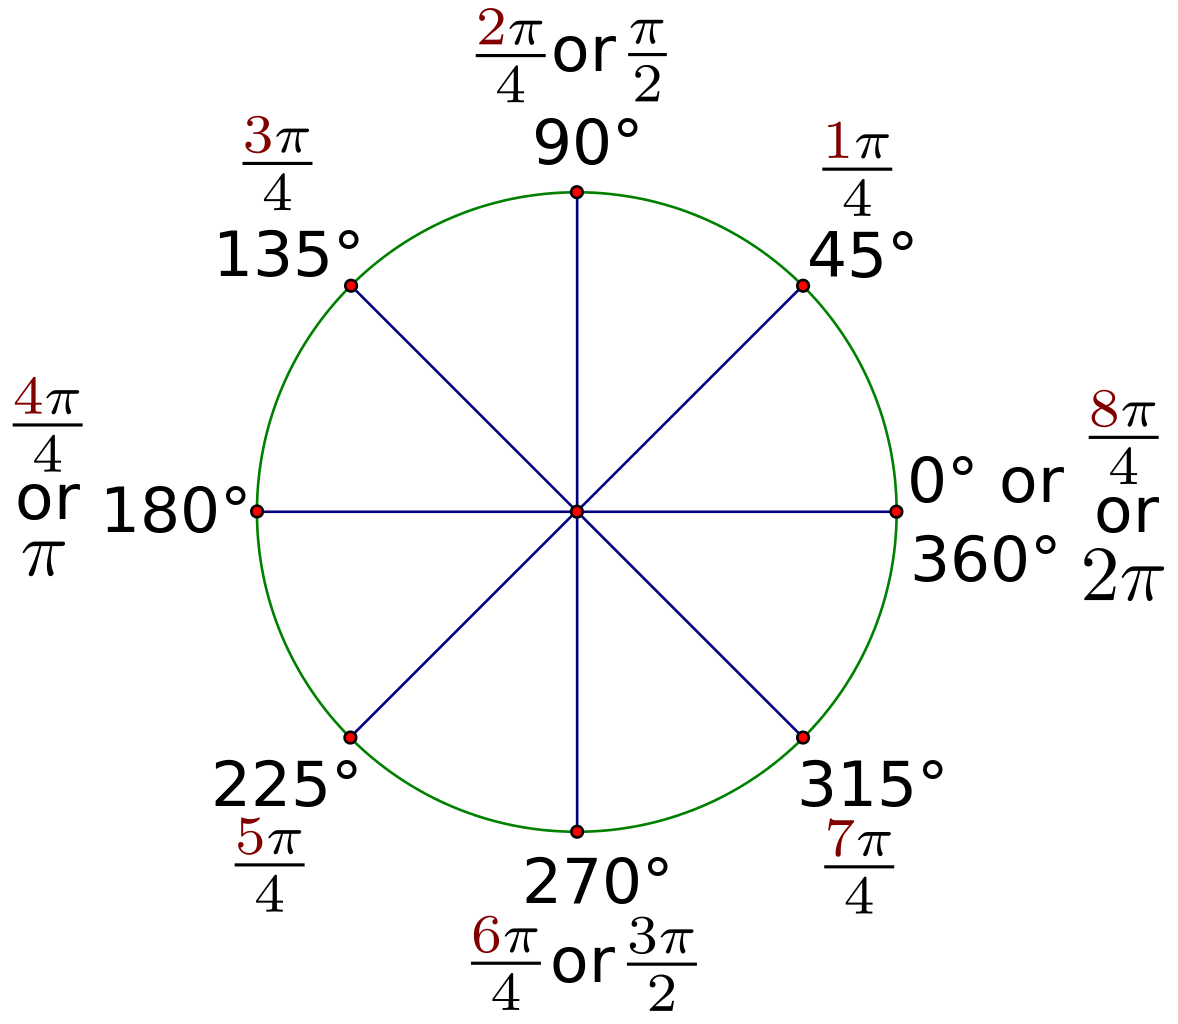 Body_radians.png